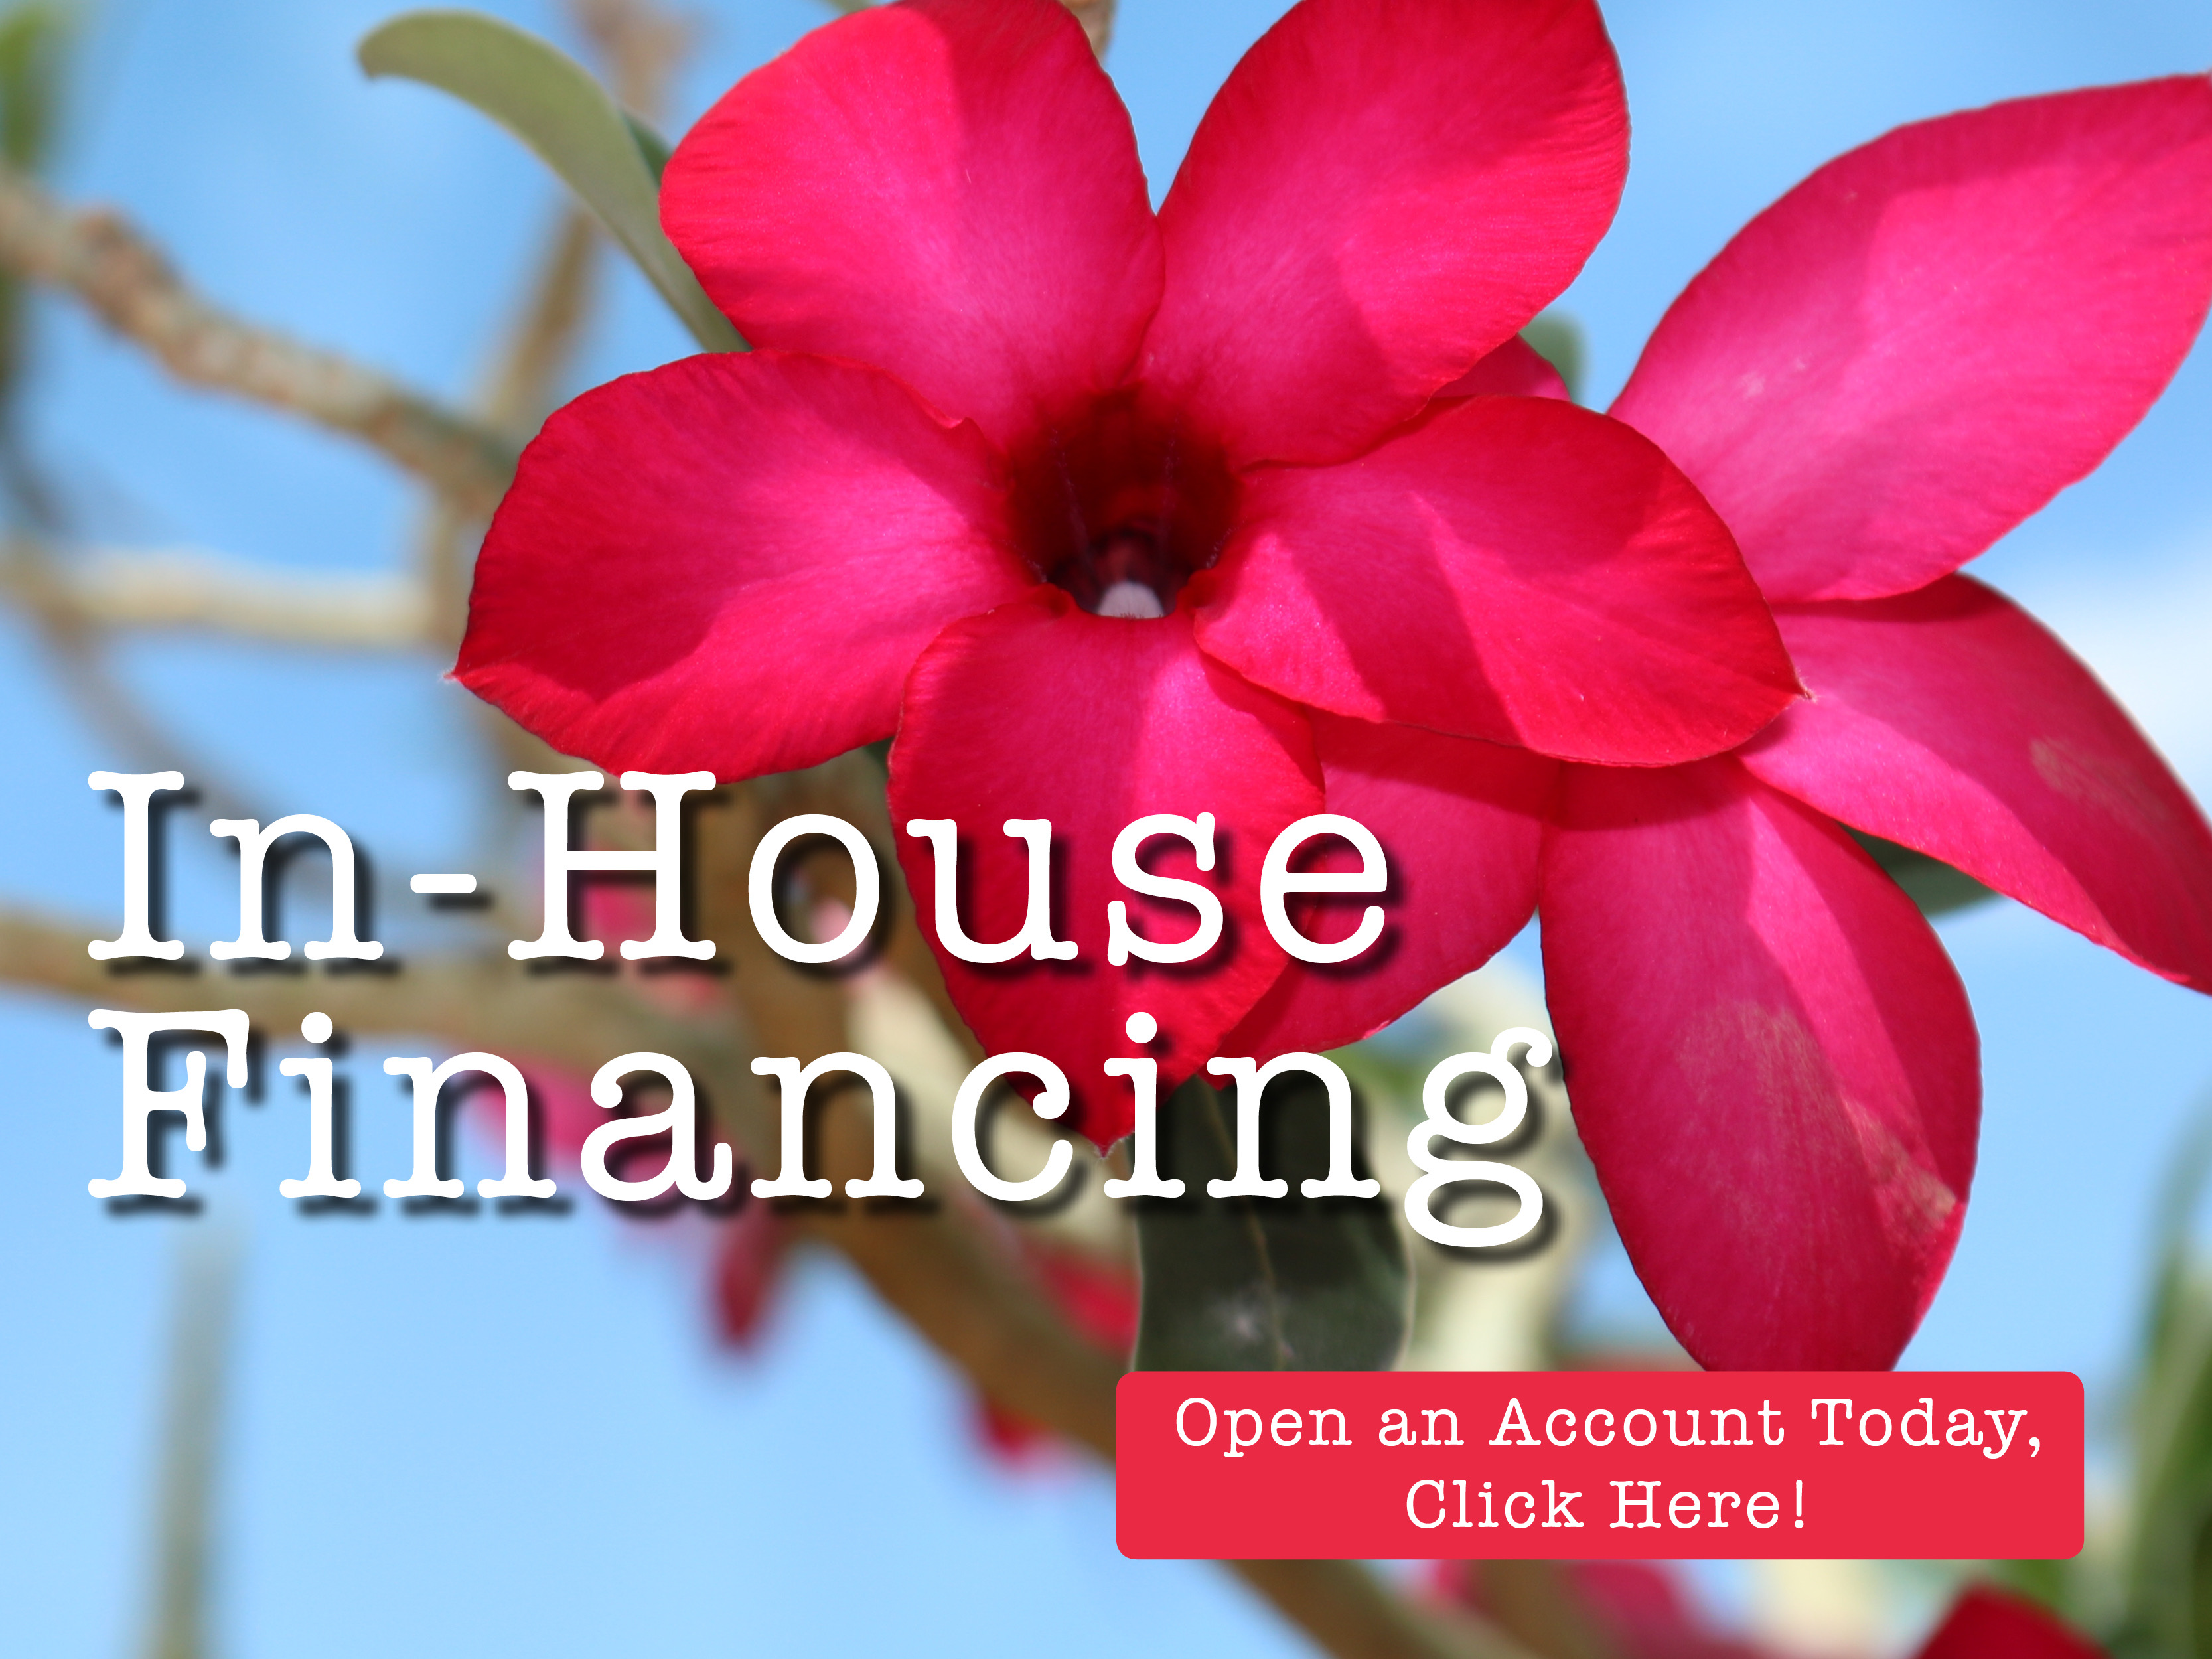 Plant World In-house financing